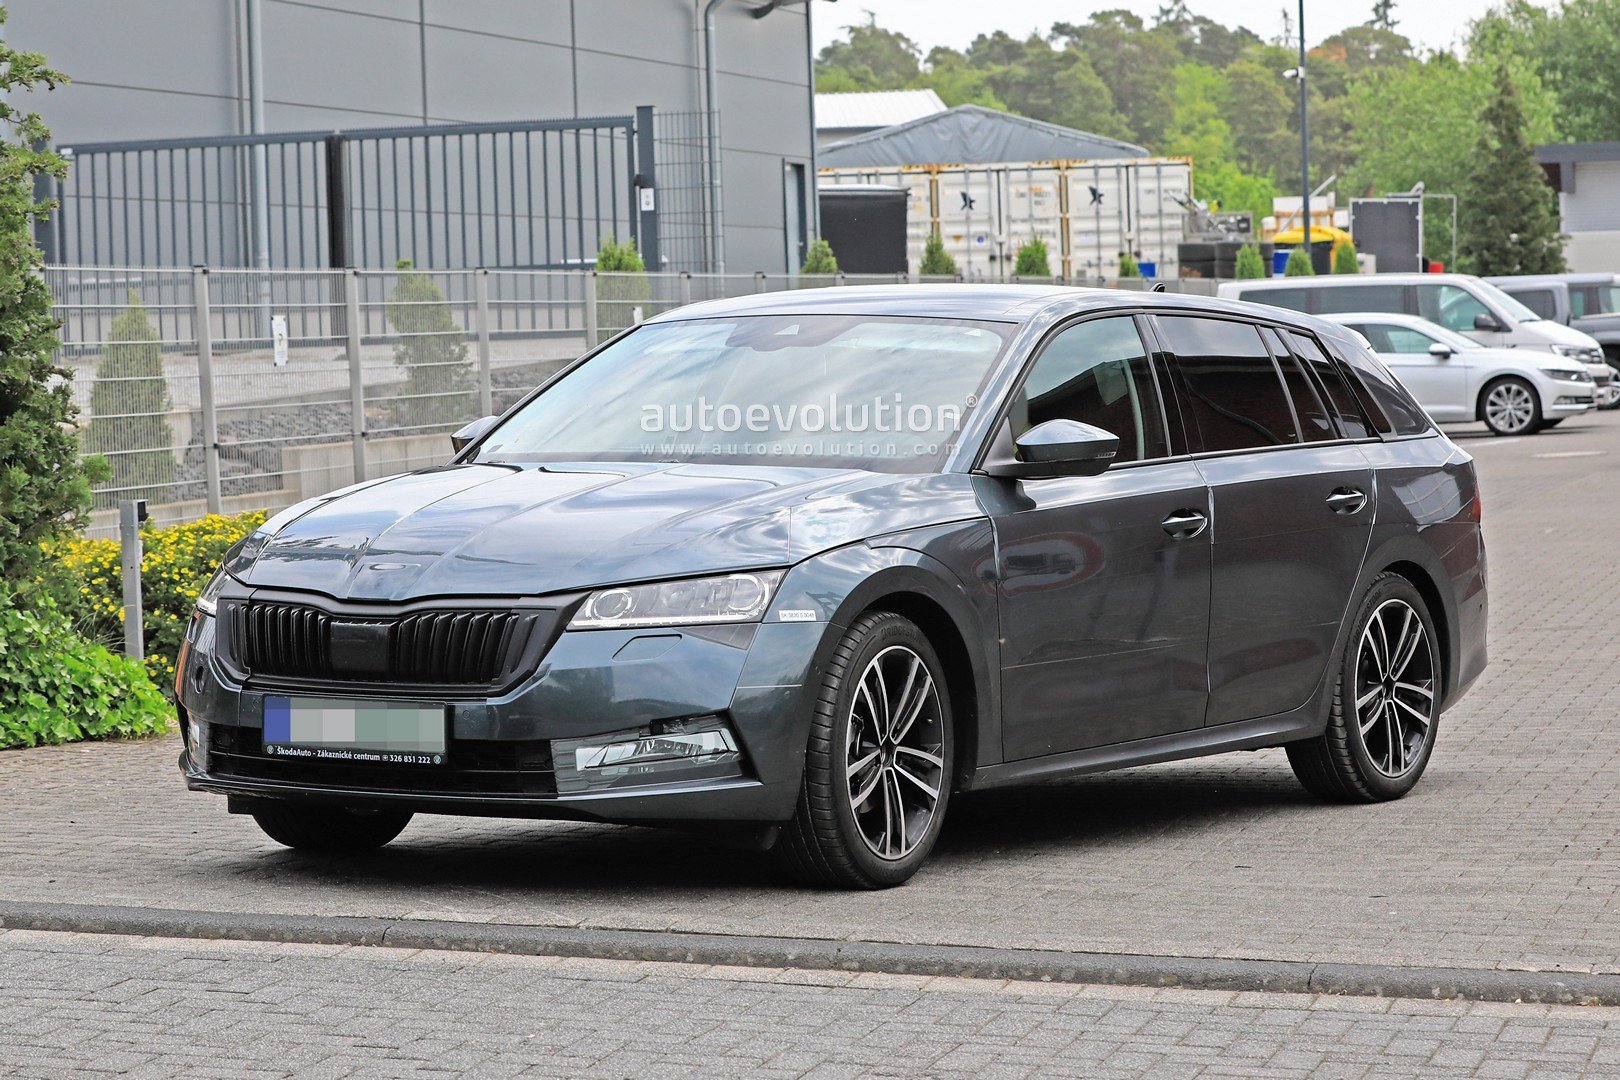 2020 The Spy Shots Skoda Superb Review and Release date